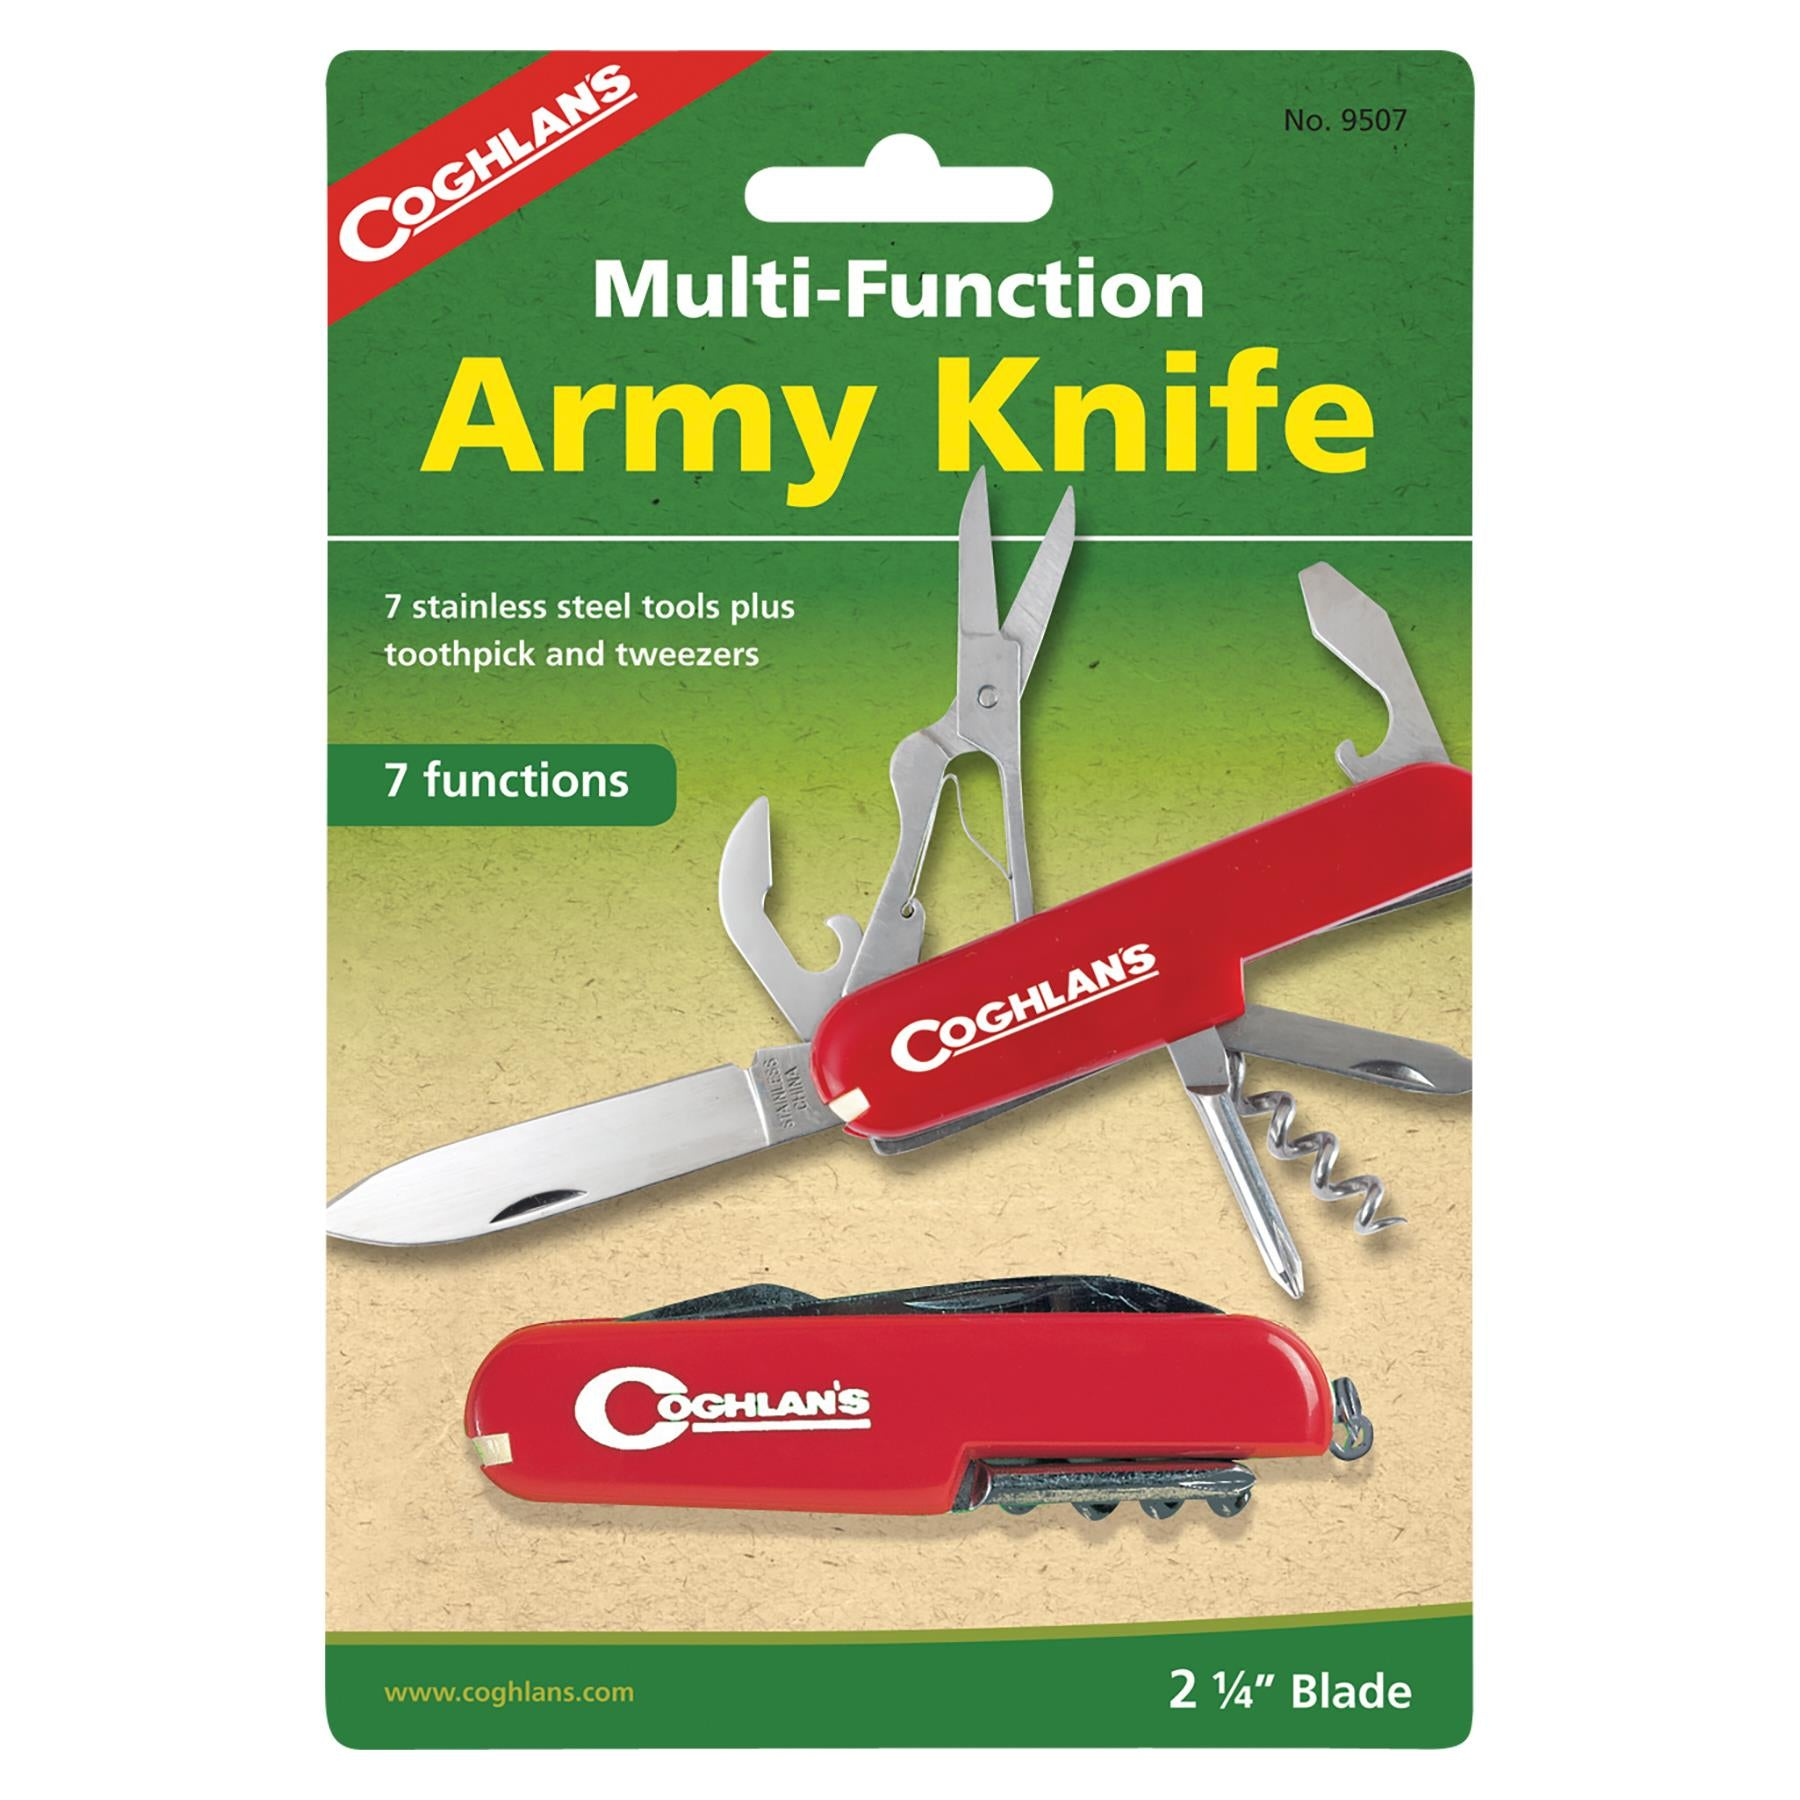 Army Knife (7 function)